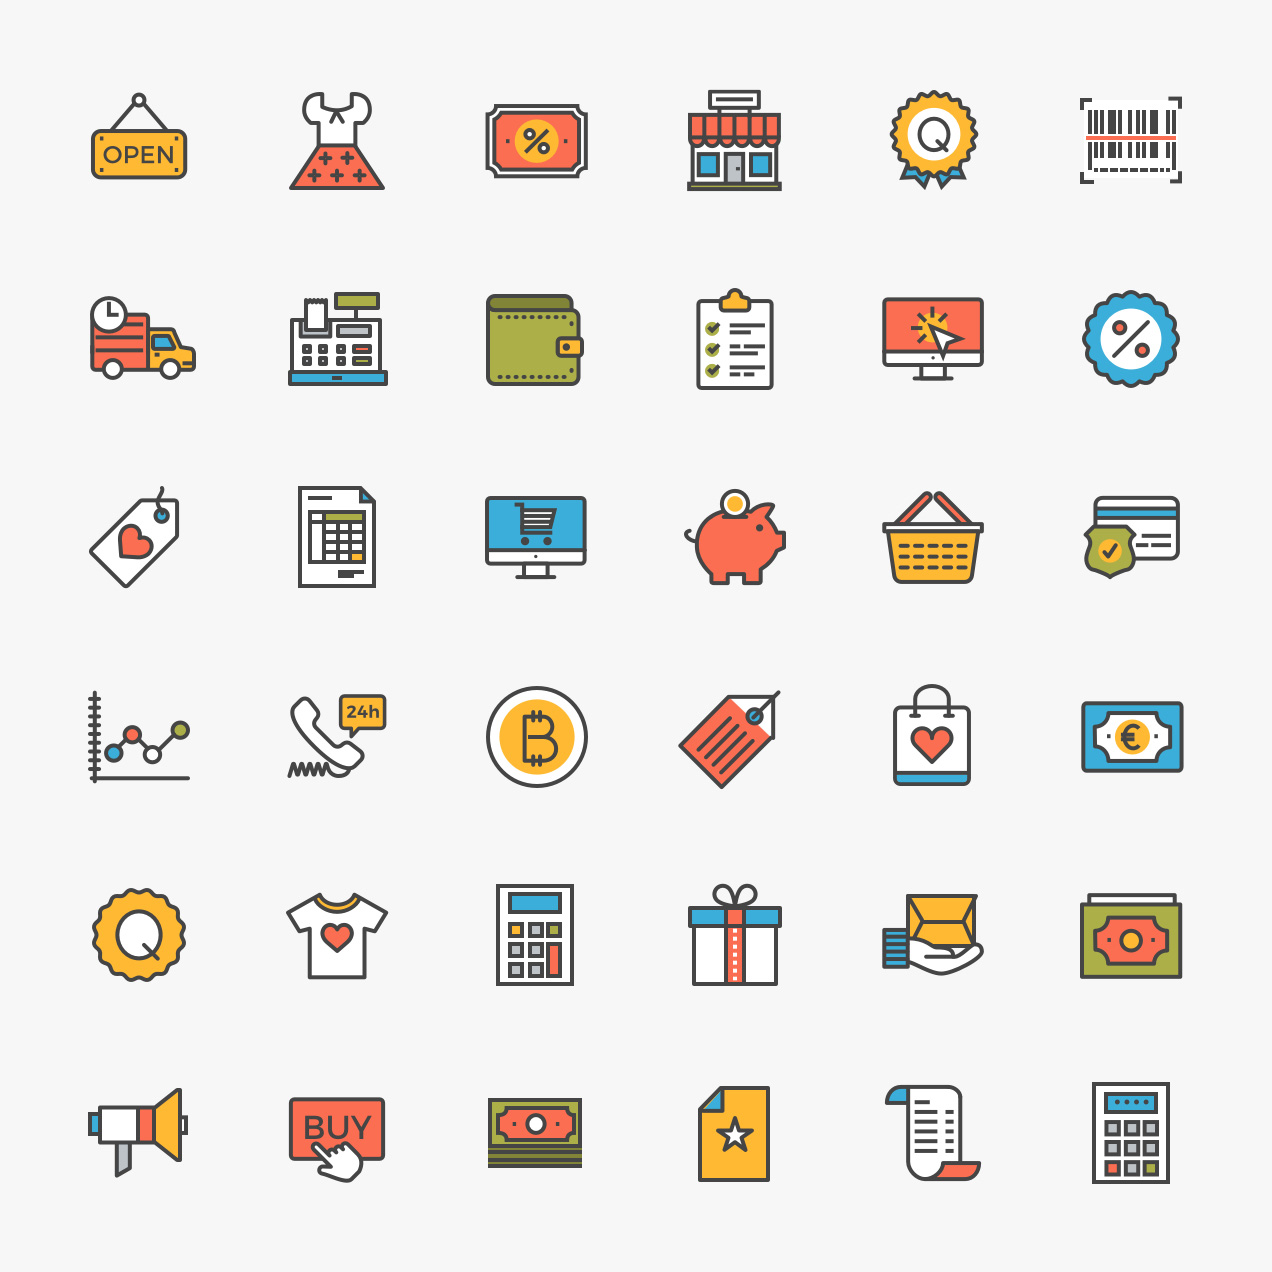 Ecommerce Free Icon Pack - 38 free, flat-line ecommerce icons for your next product design project.